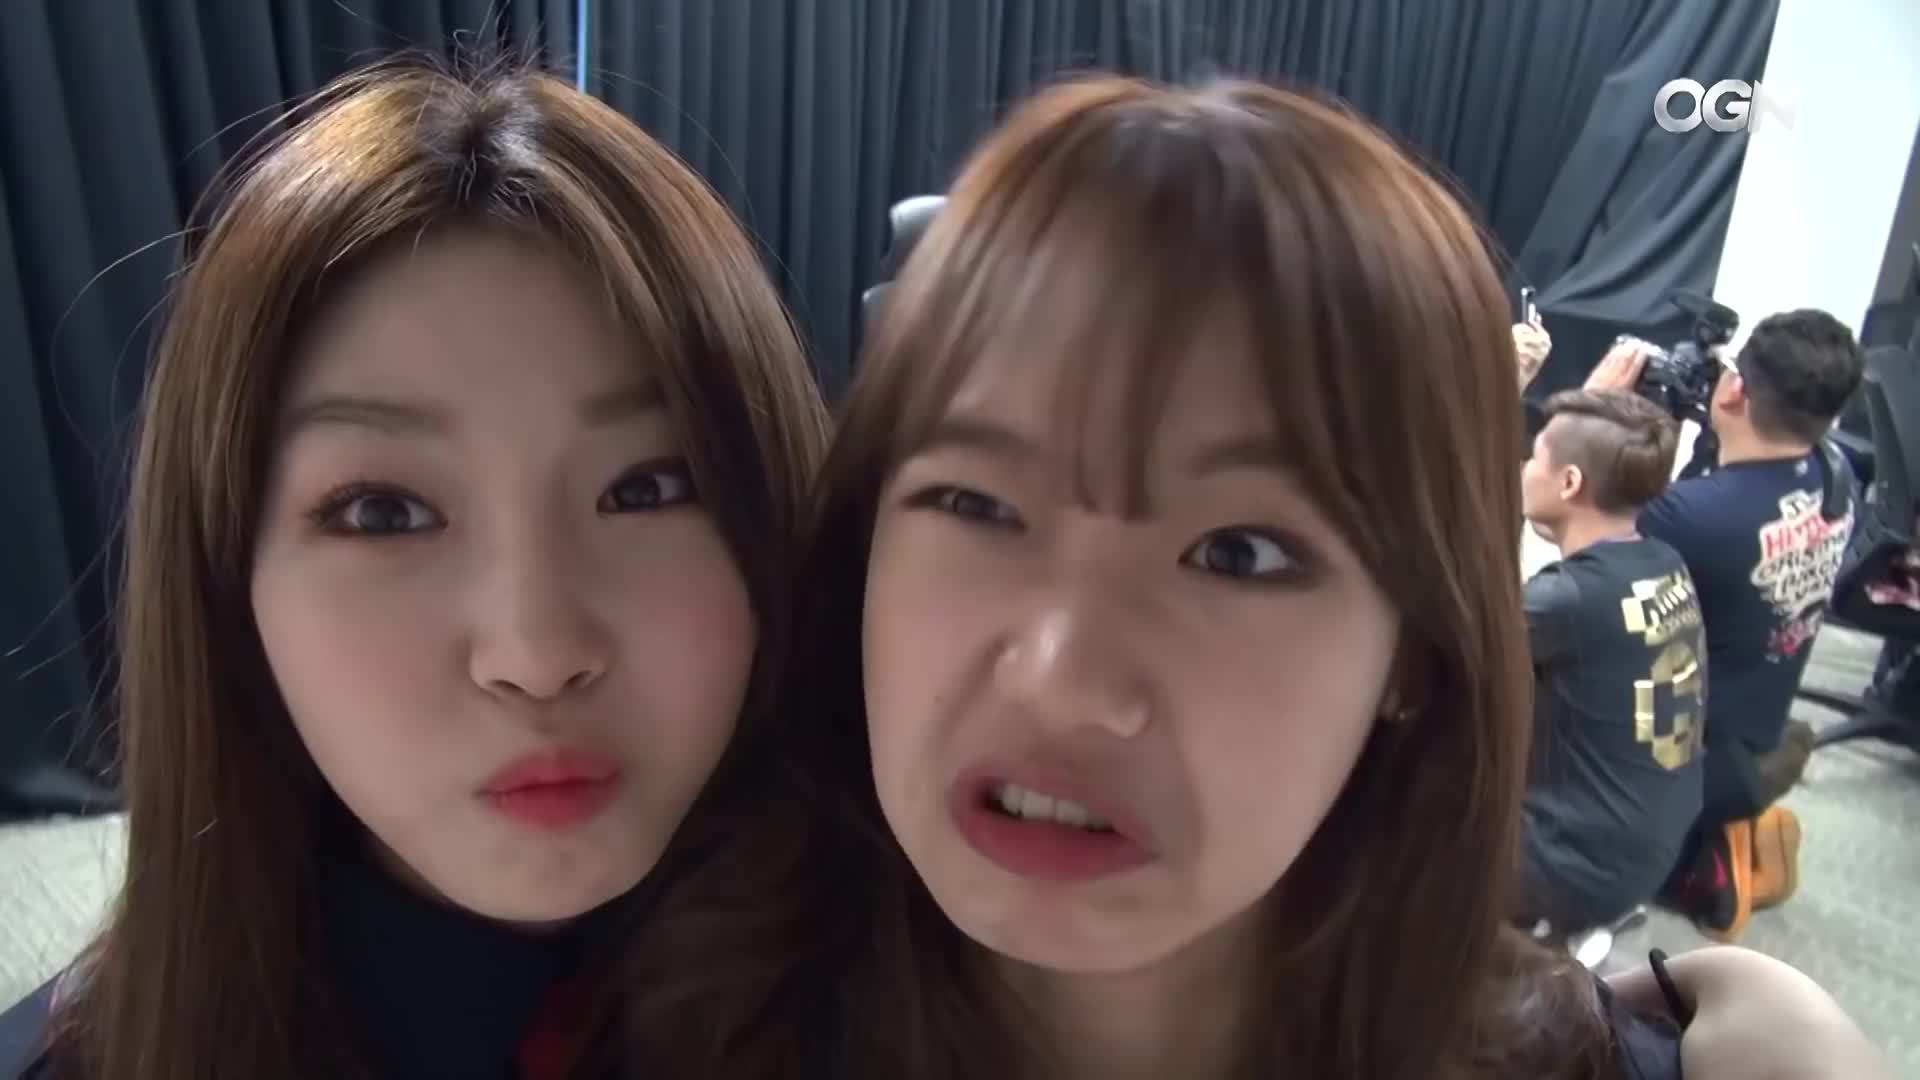 StoppedWorking, ogn, 온게임넷, Chungha Yoojung derp GIFs